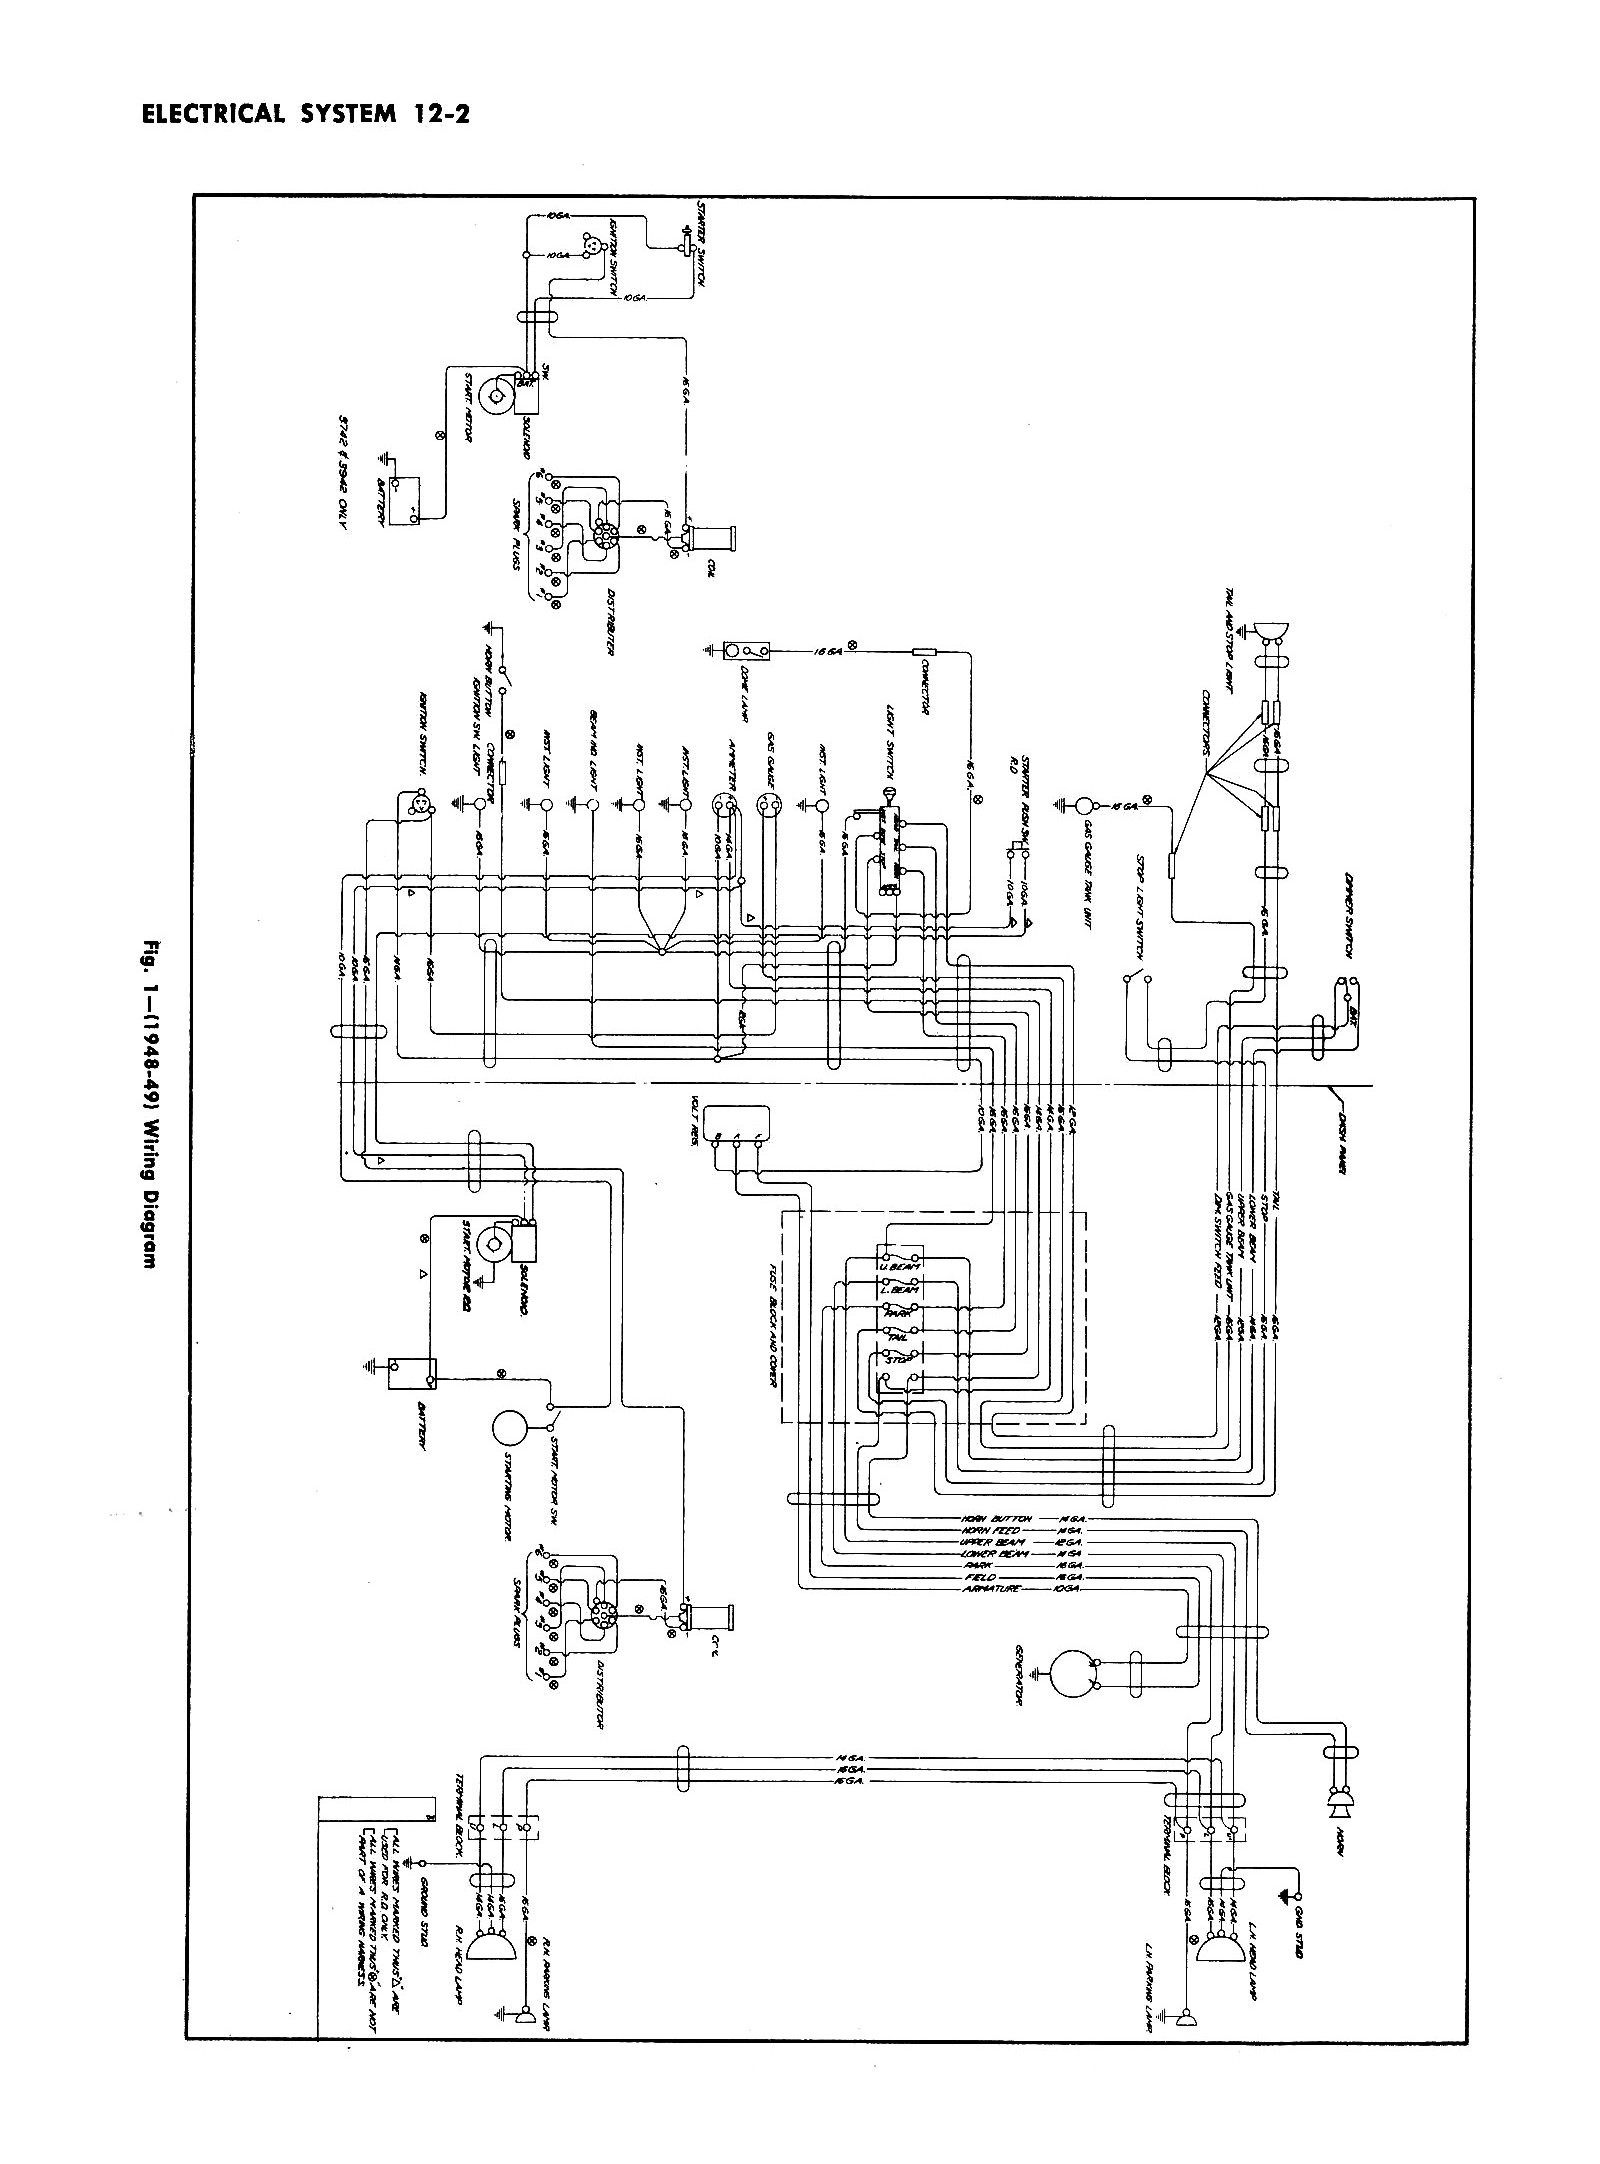 looking for a wiring schematic for a 1947